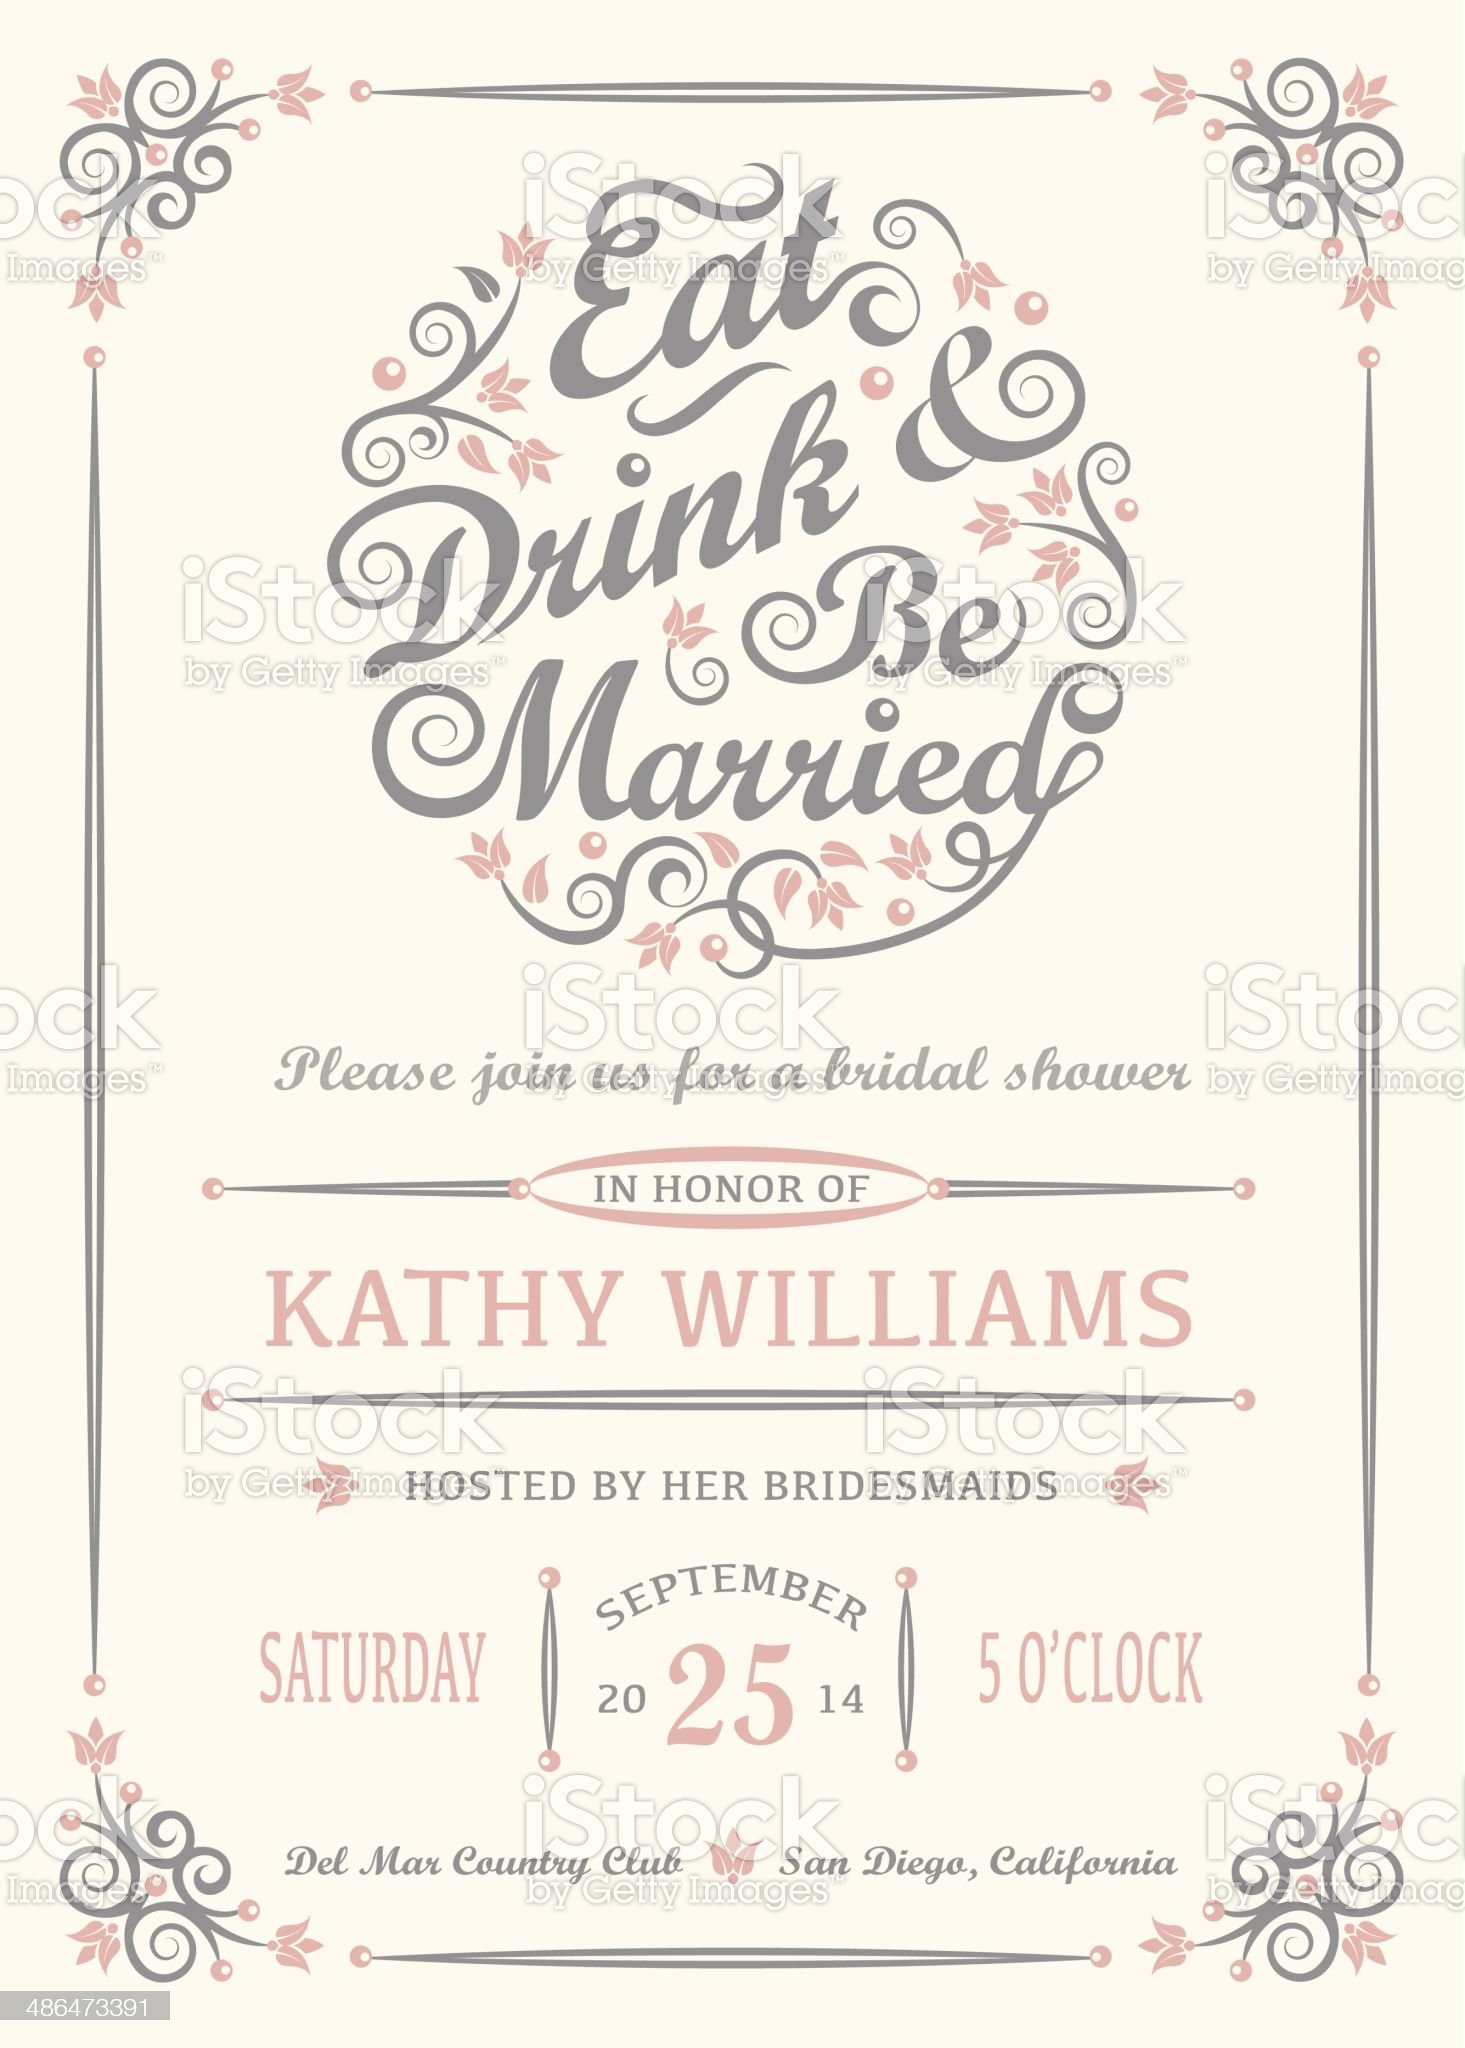 Eat Drink and Be Married Invitation royalty-free stock vector art